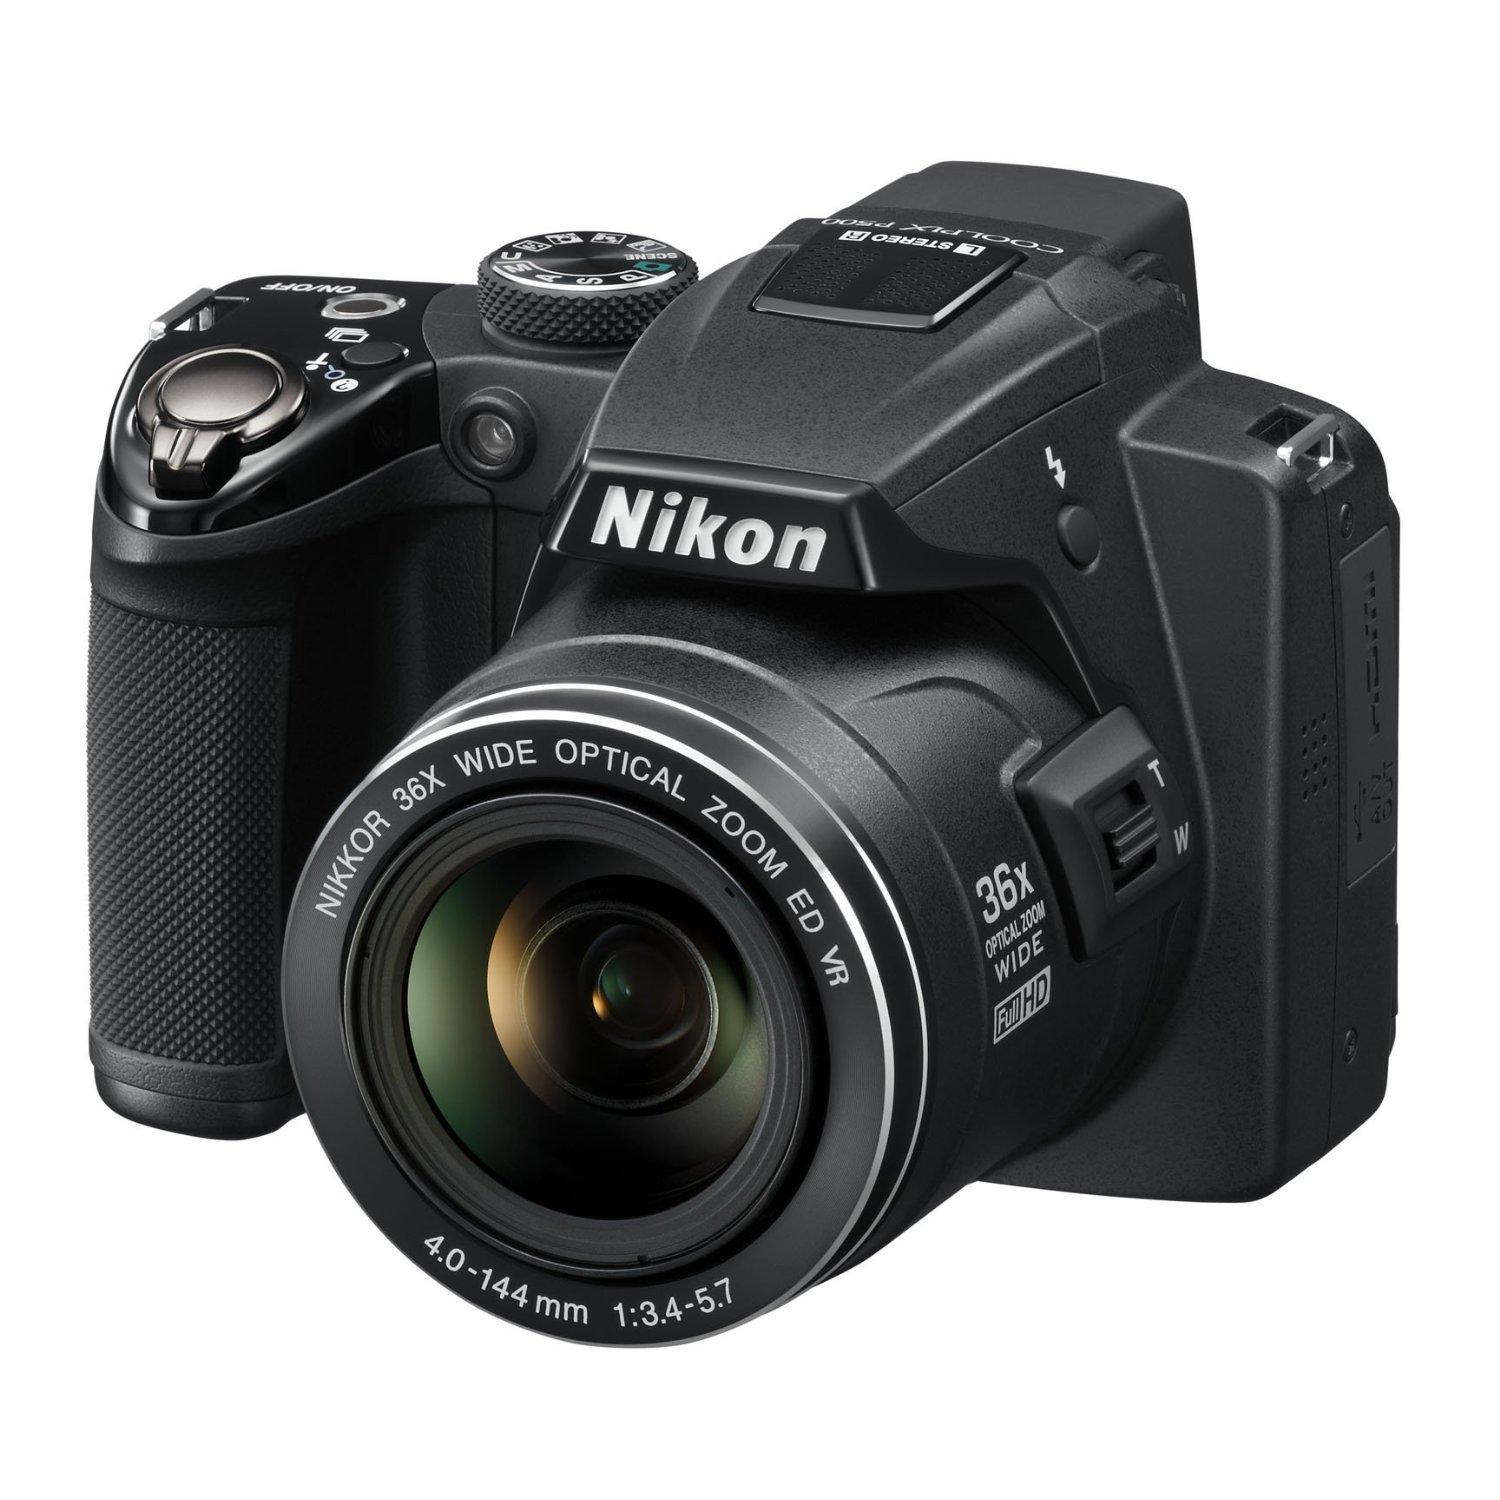 nikon coolpix p500 appareils nikon photo. Black Bedroom Furniture Sets. Home Design Ideas